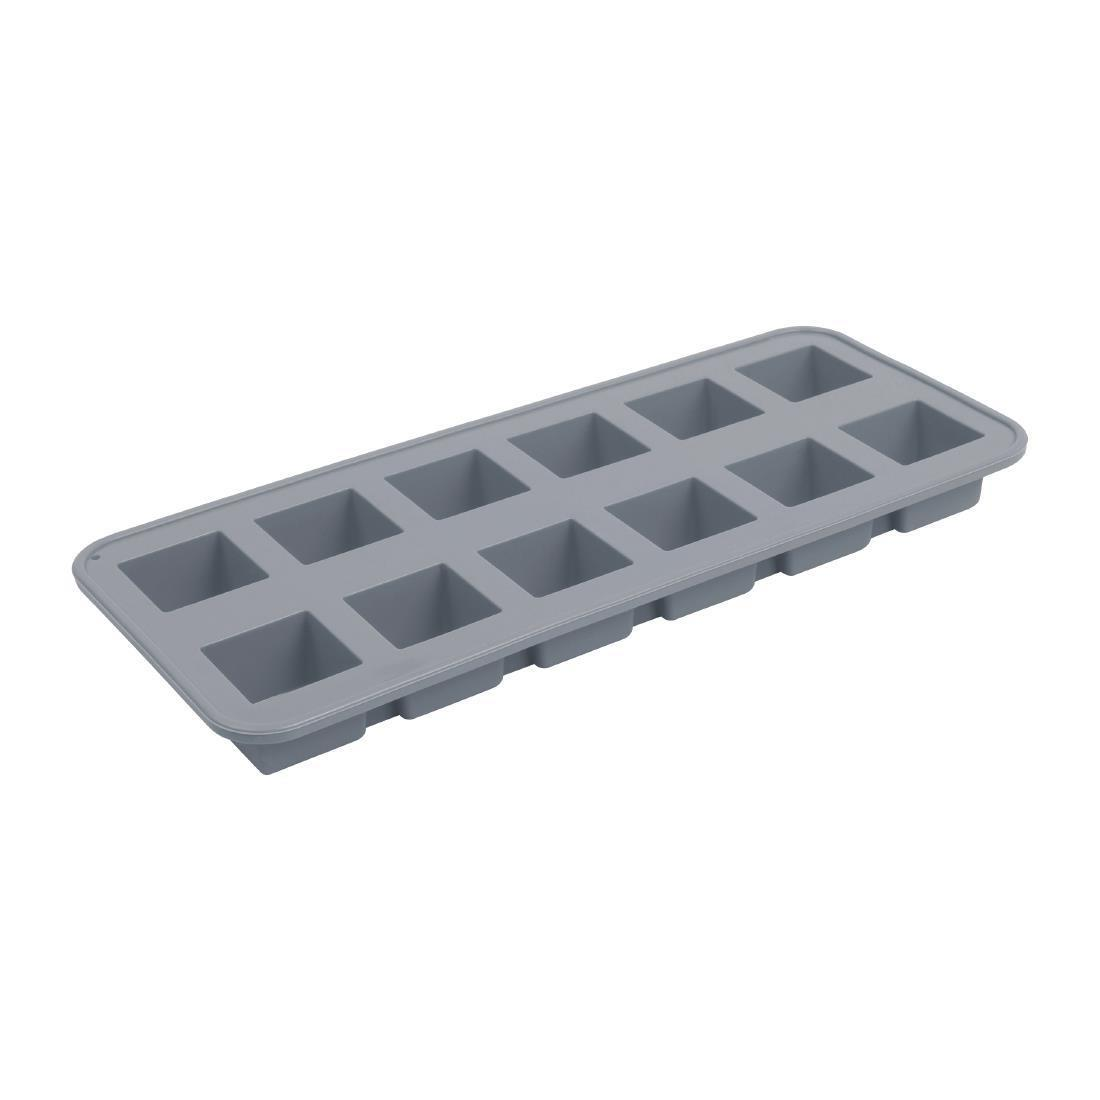 Vogue Flexible Silicone Ice Cube Mould - Each - DA526